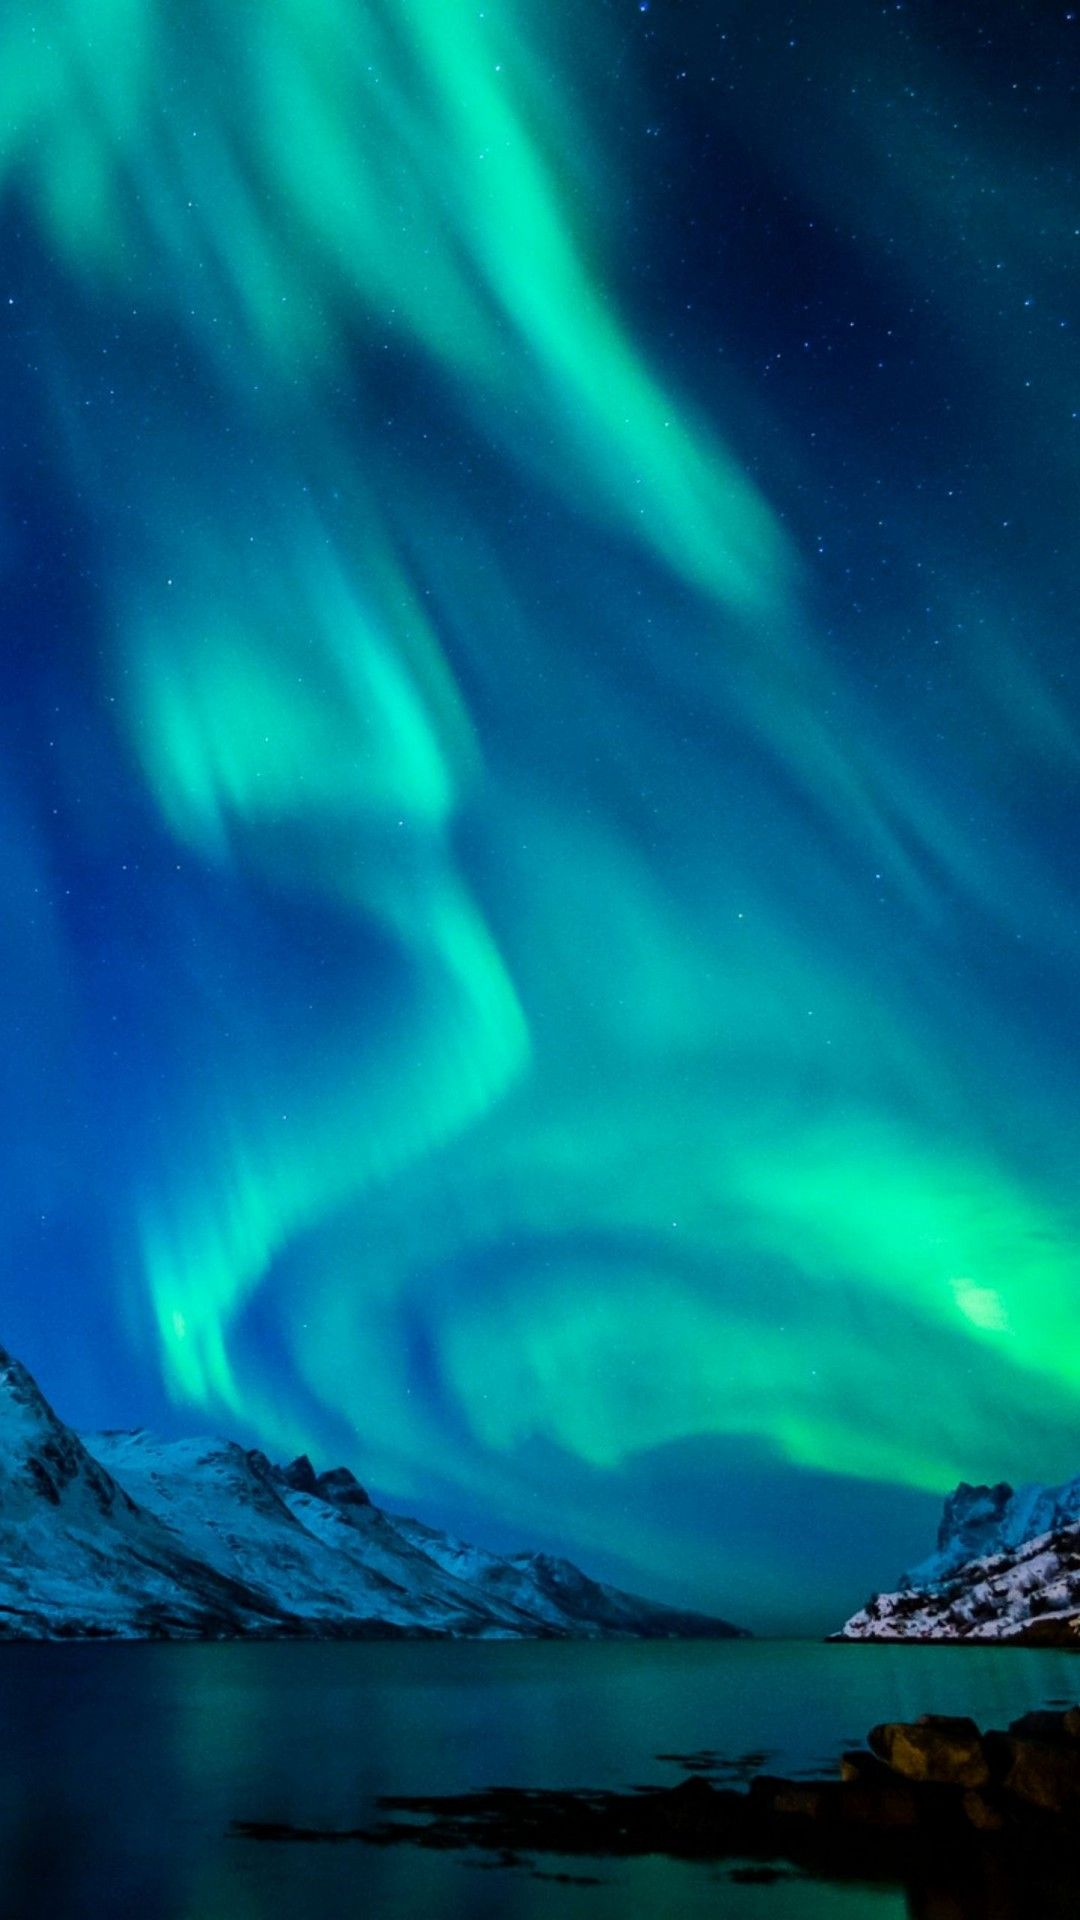 Aurora Wallpaper For Iphone Best Iphone Wallpaper Northern Lights Wallpaper Northern Lights Aurora Boreal